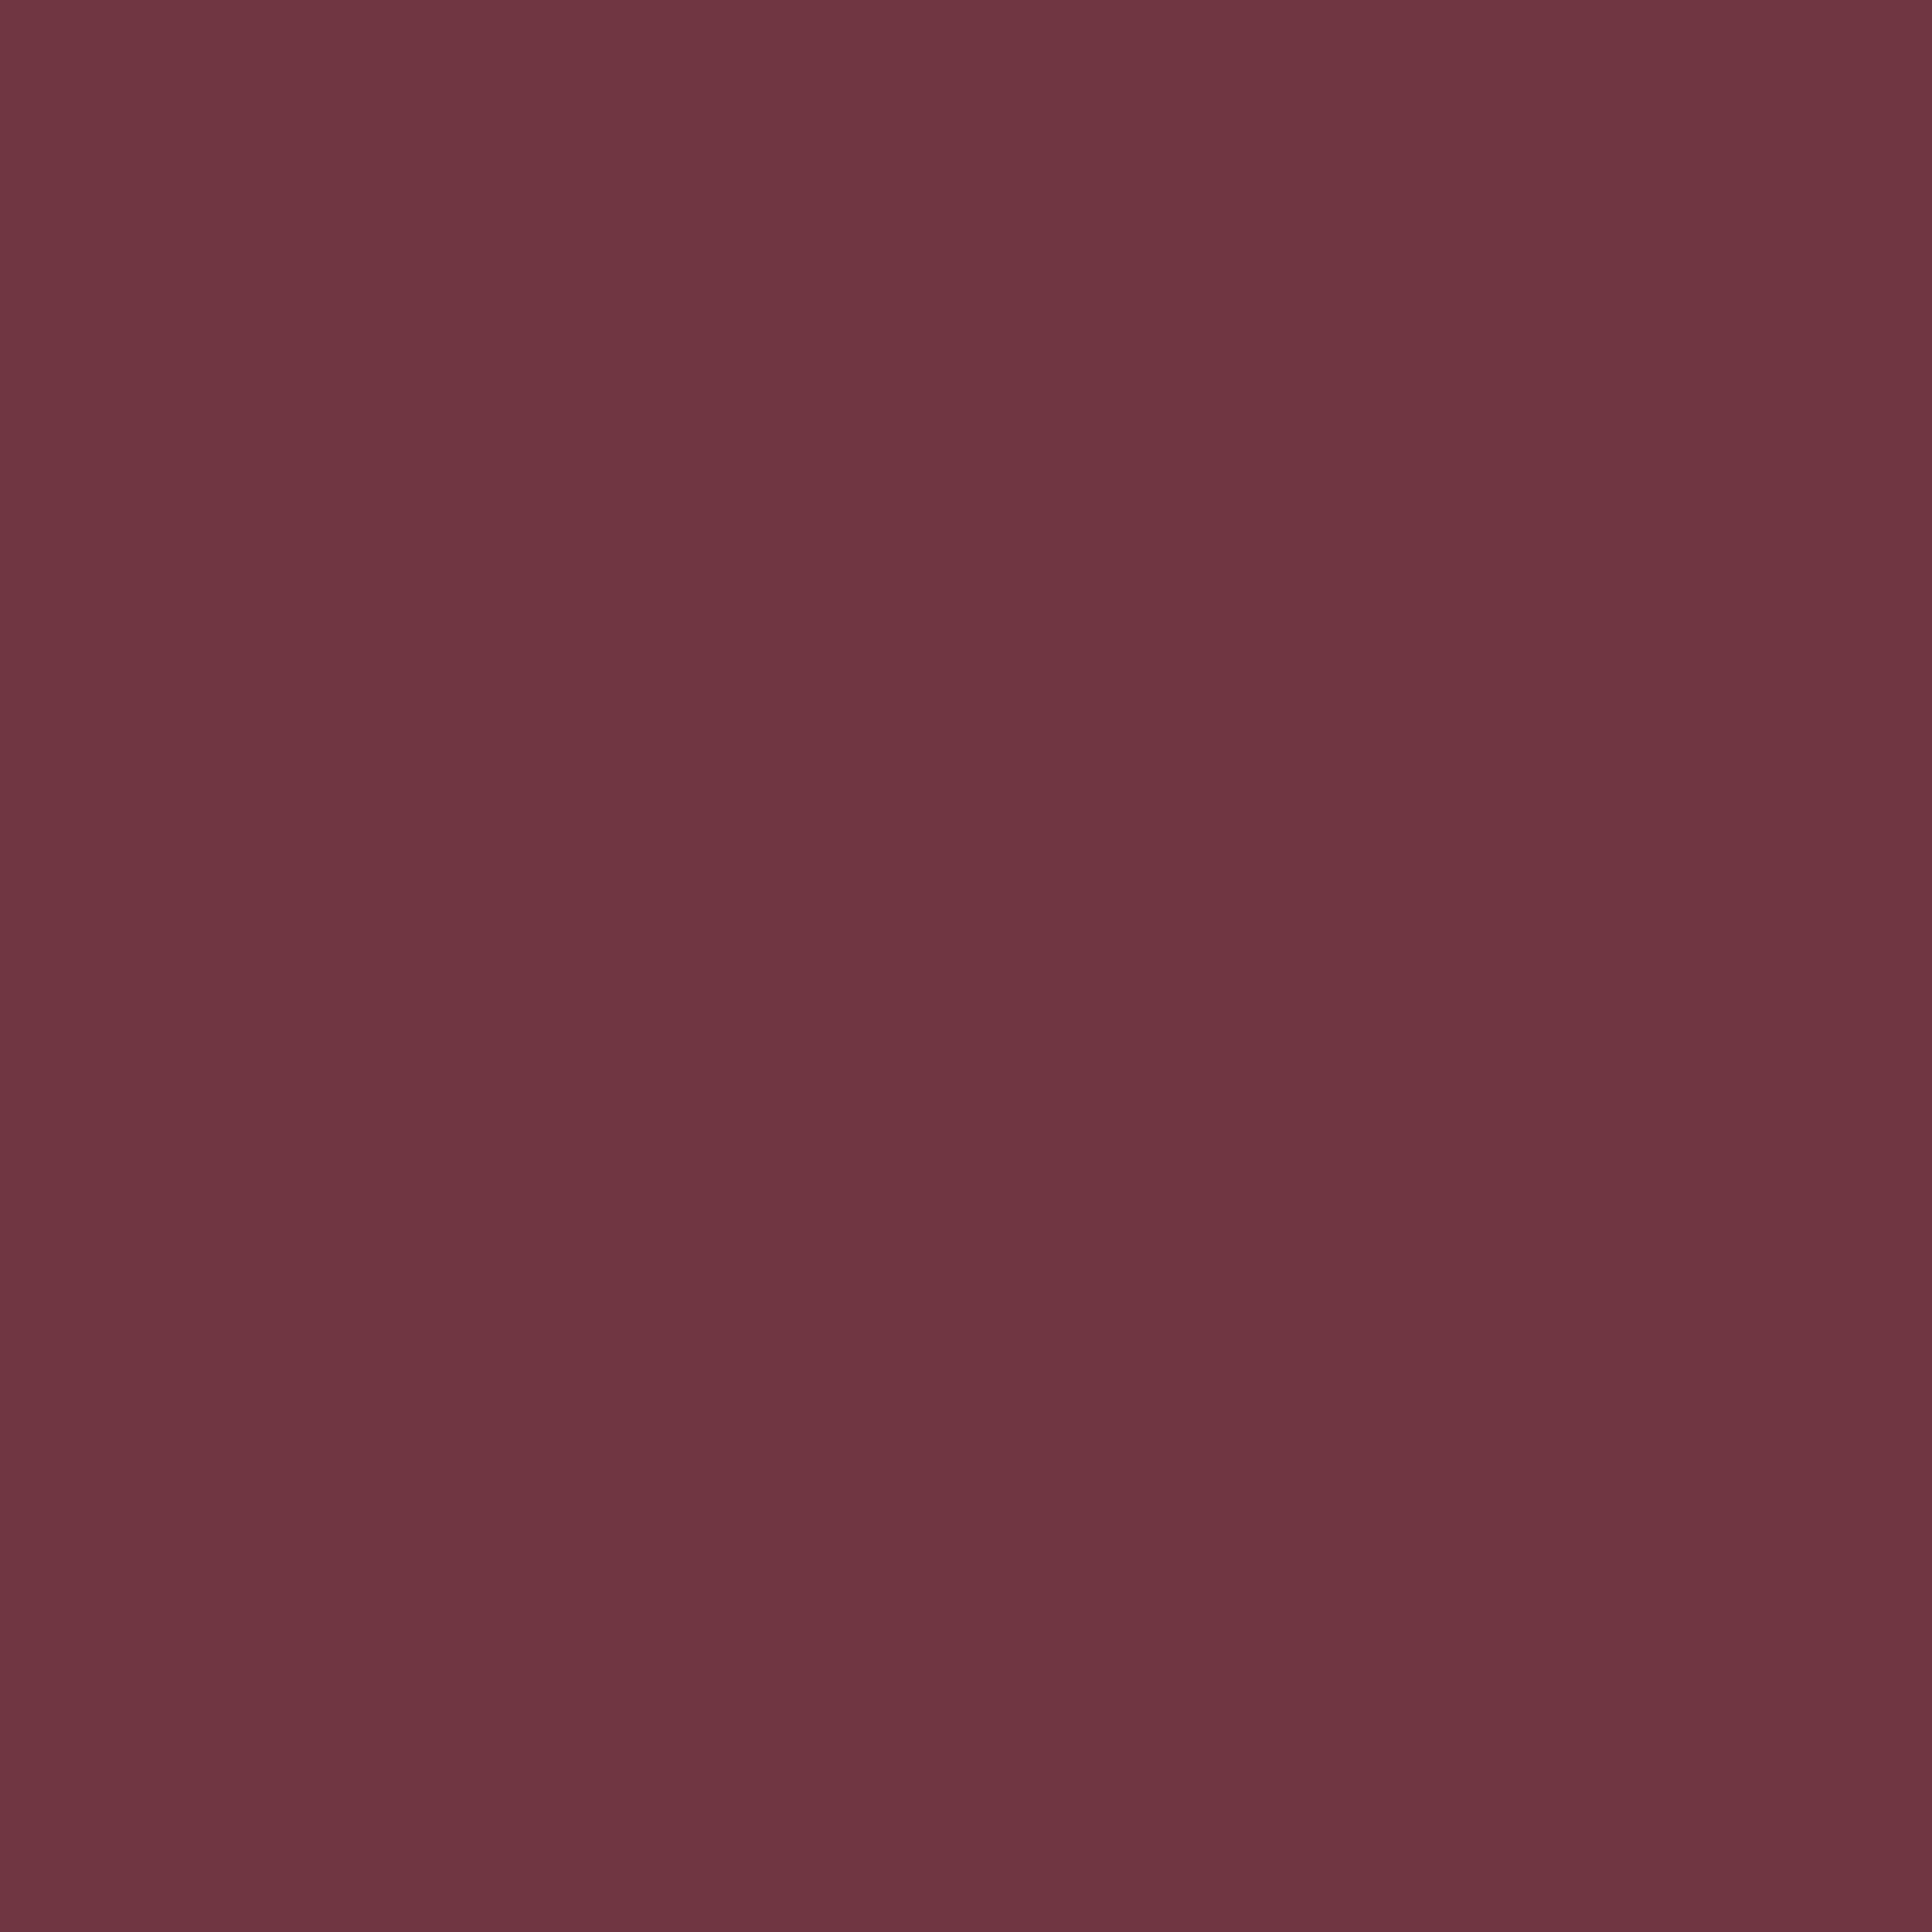 2048x2048 Catawba Solid Color Background